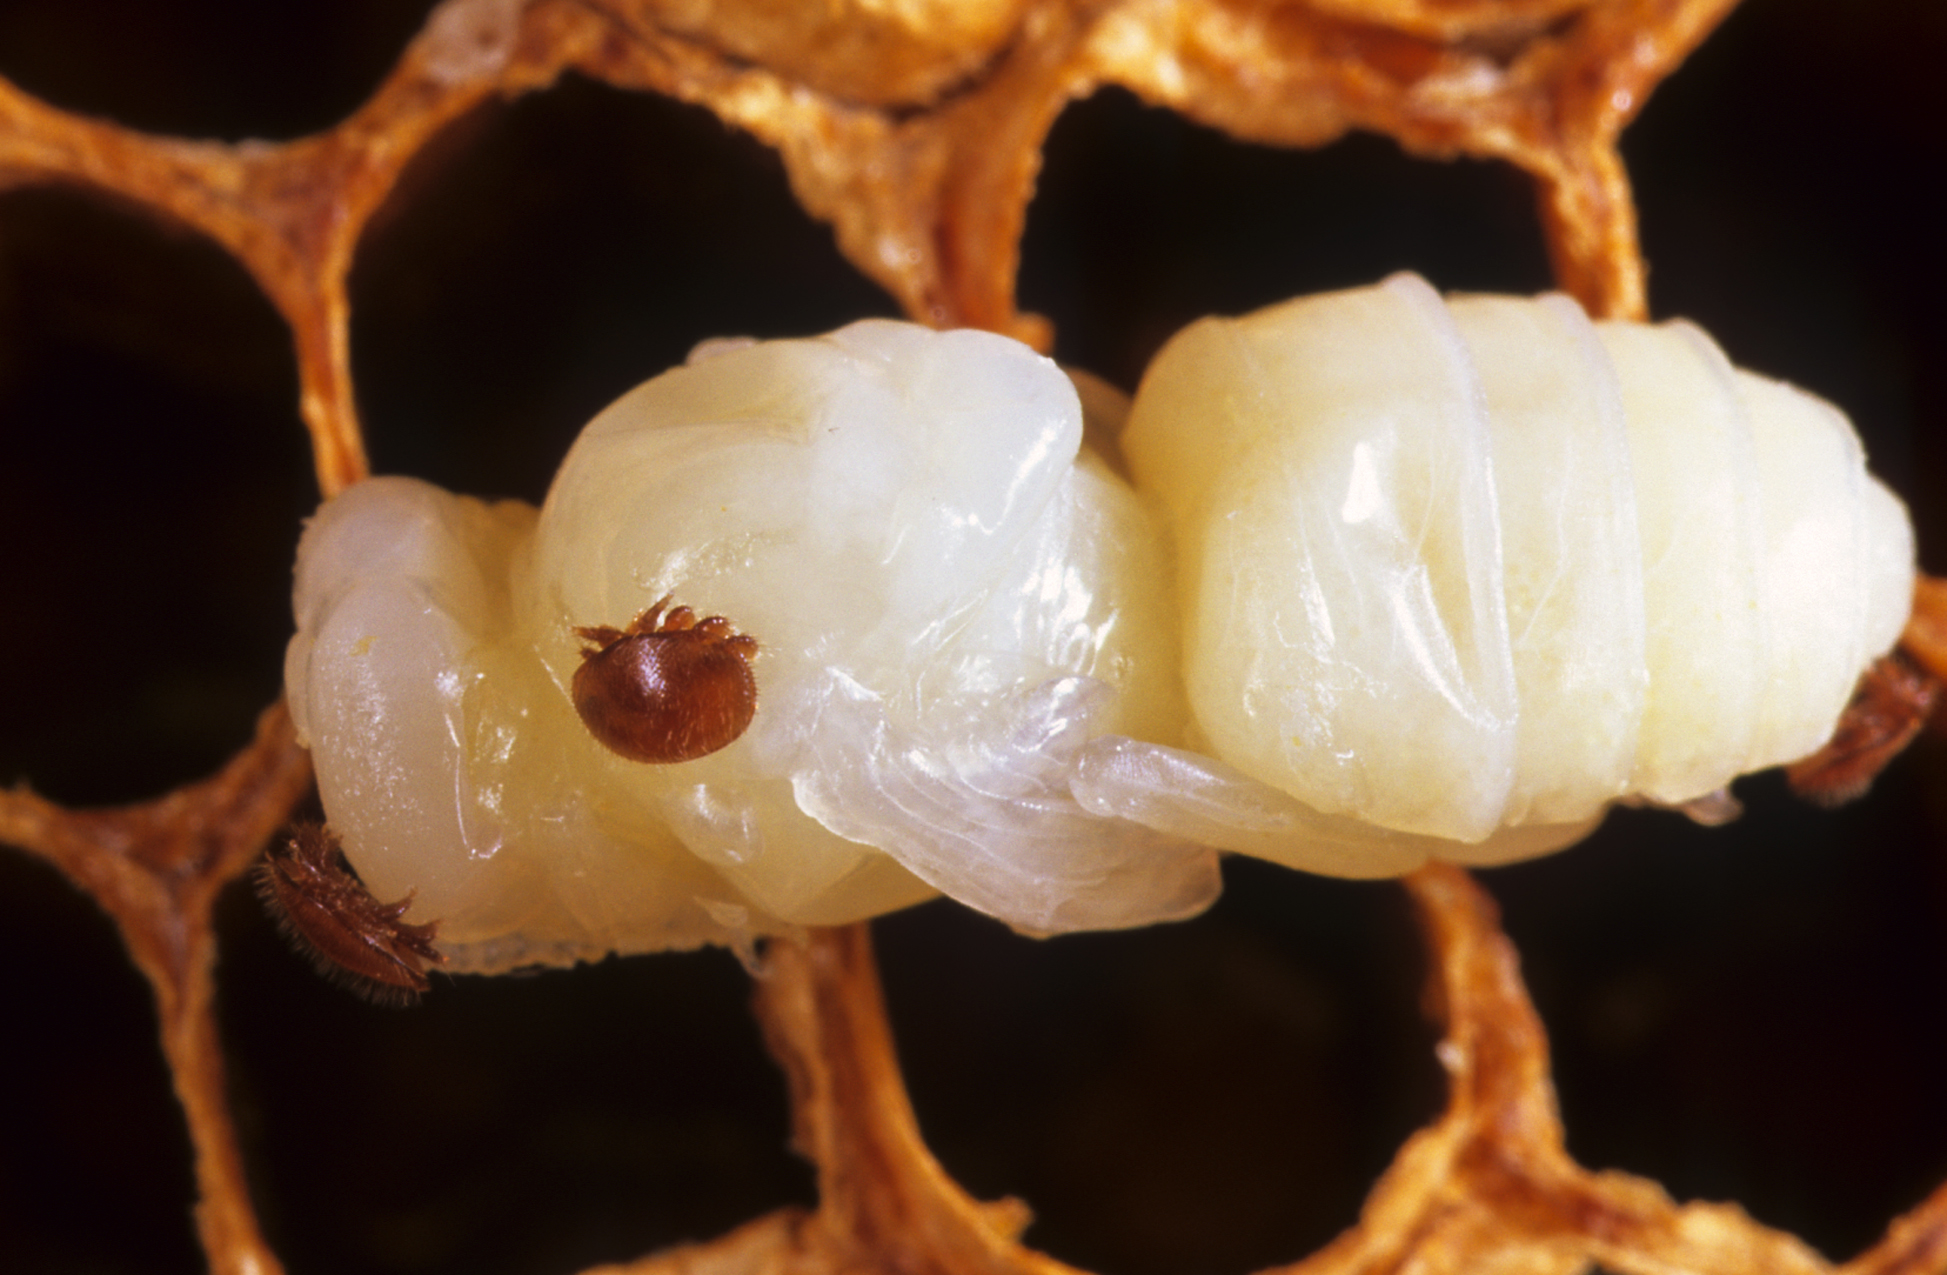 Varroa mite, latched onto a bee pupae.